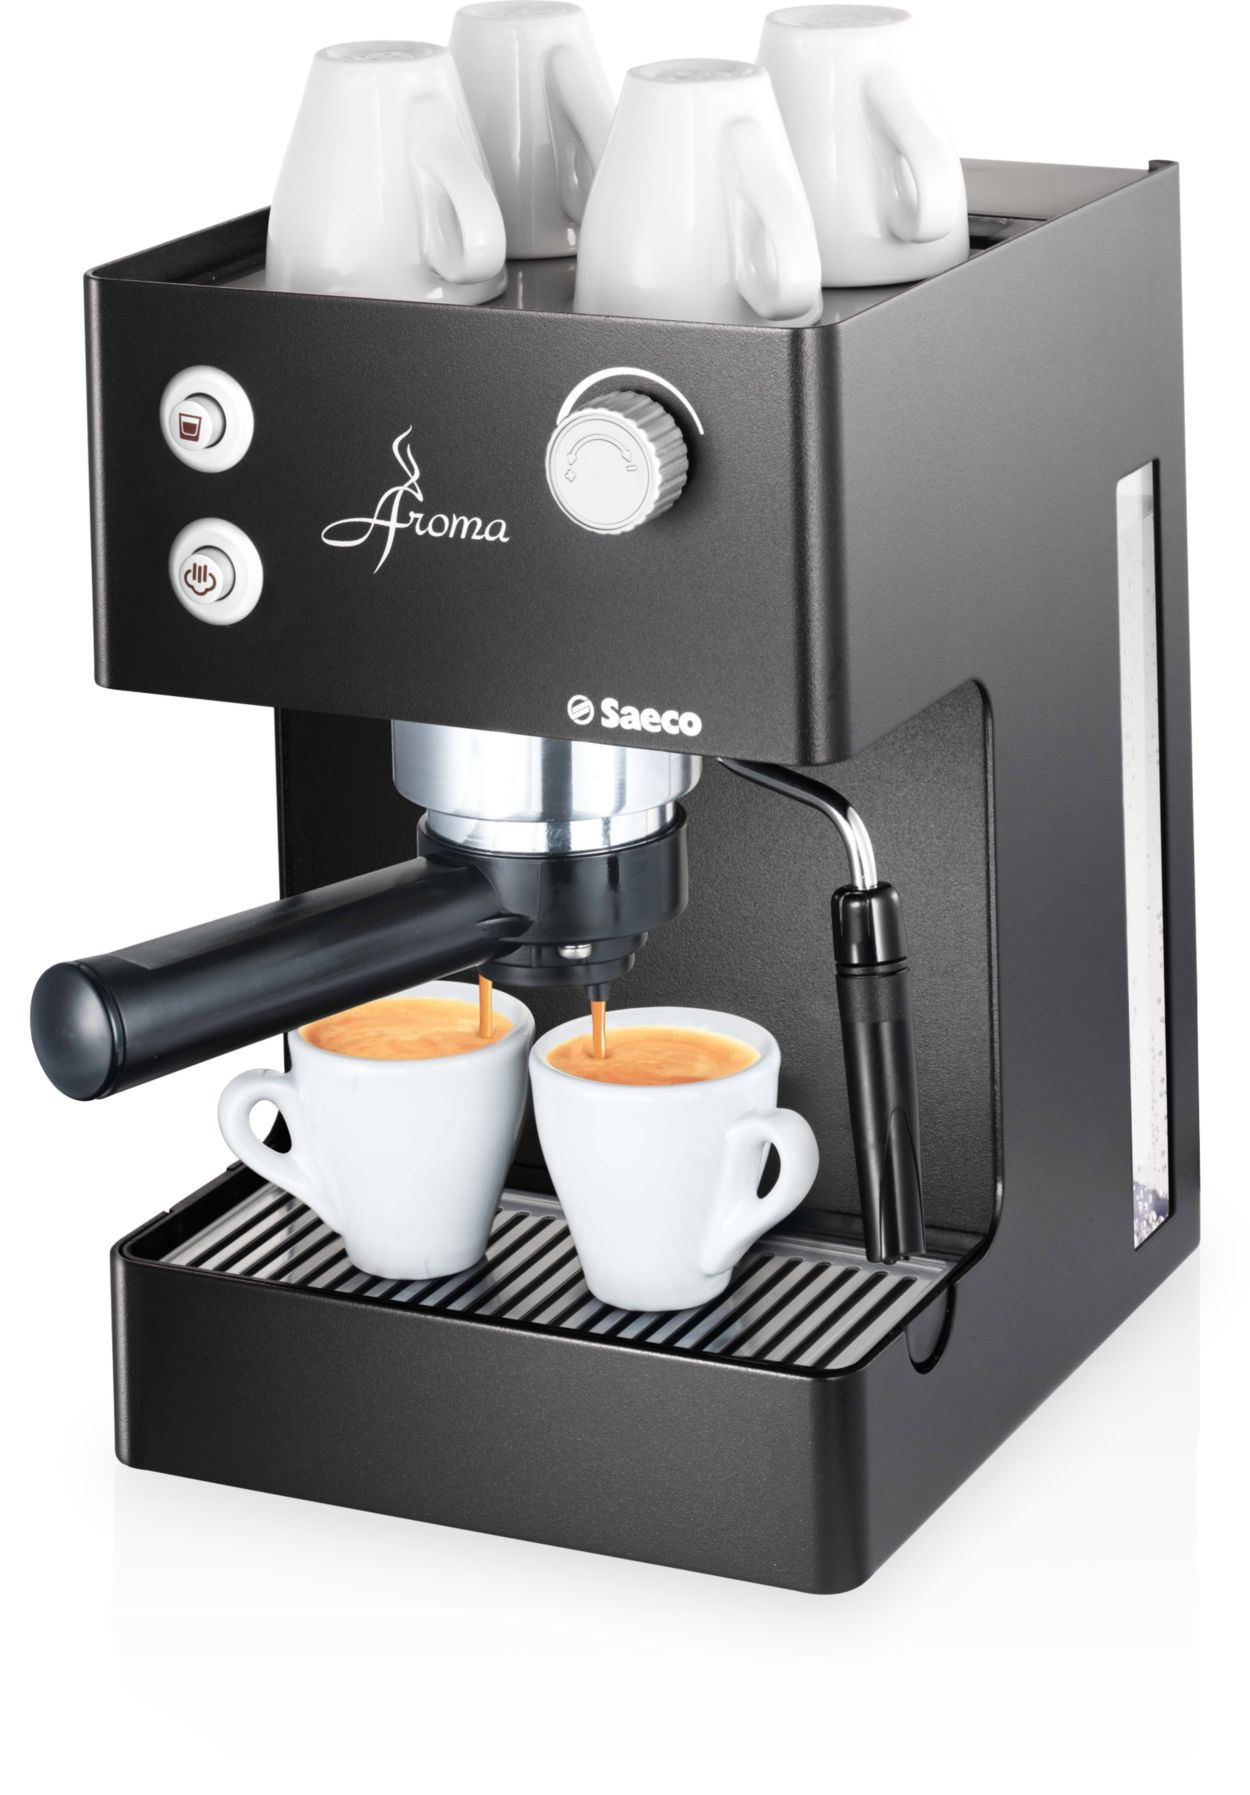 Saeco Coffee Maker Owner S Manual : Aroma Manual Espresso machine RI9373/47 Saeco